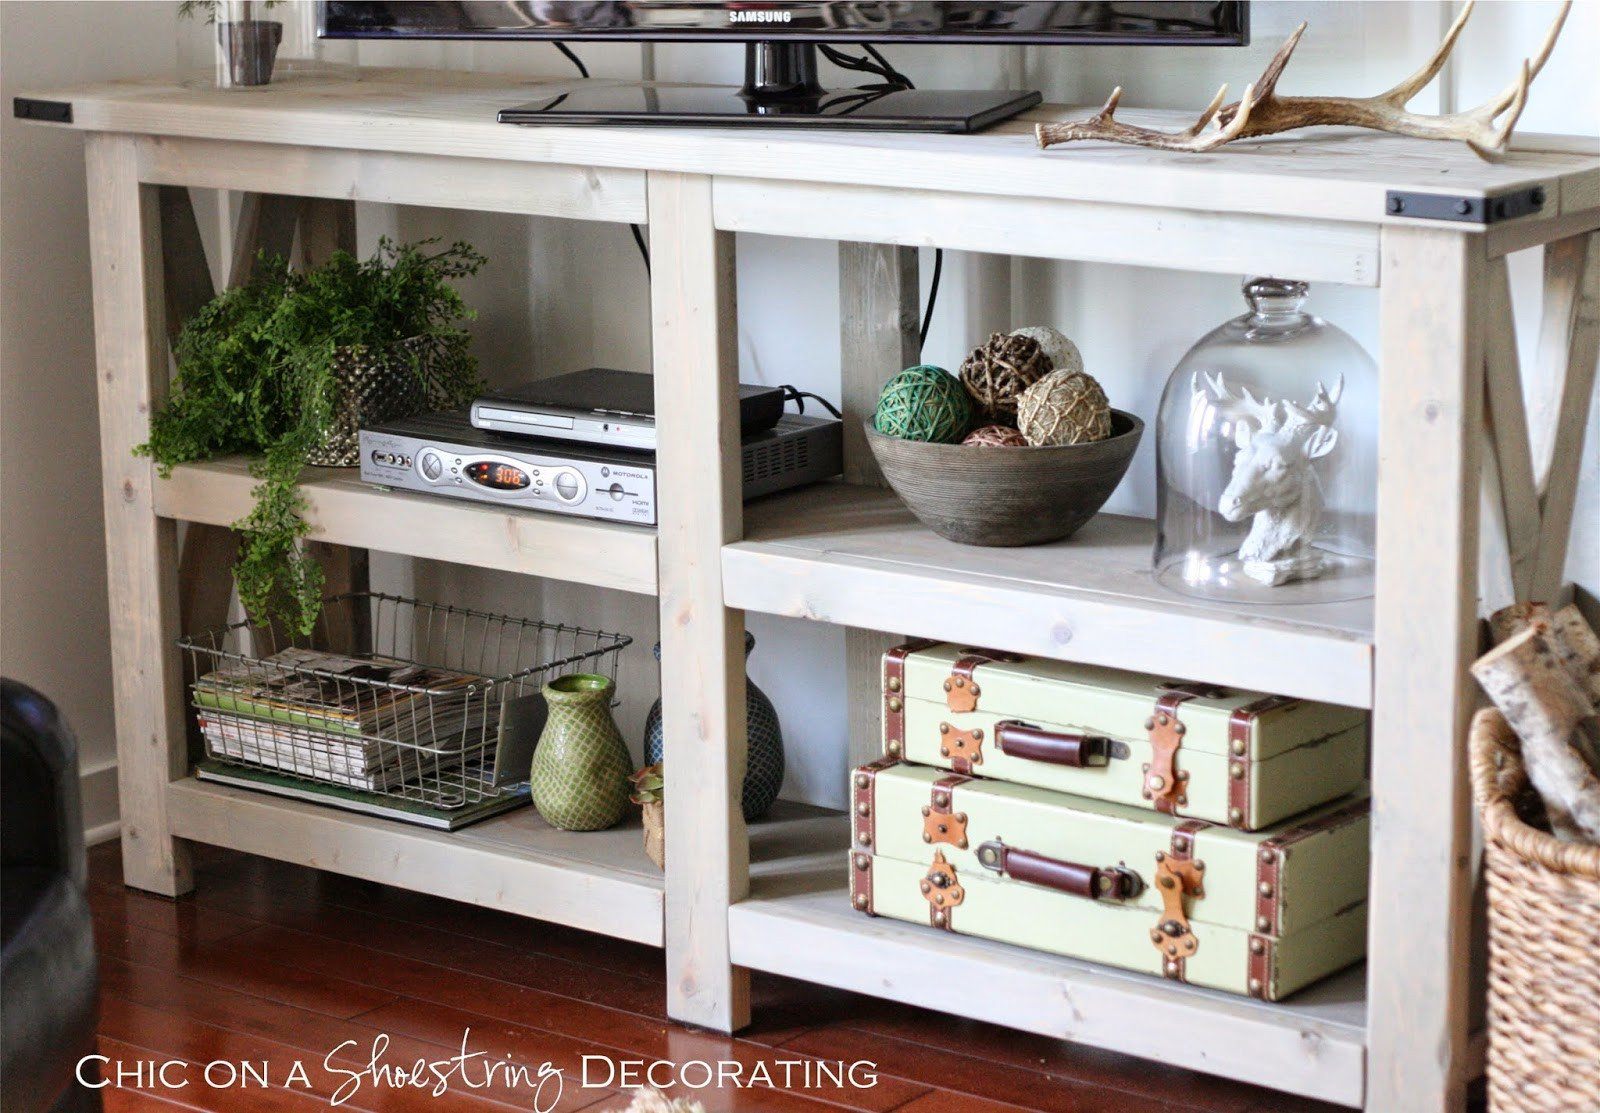 Farmhouse Tv Stand Design Ideas and Decor Chic On A Shoestring Decorating My Farmhouse Chic Living